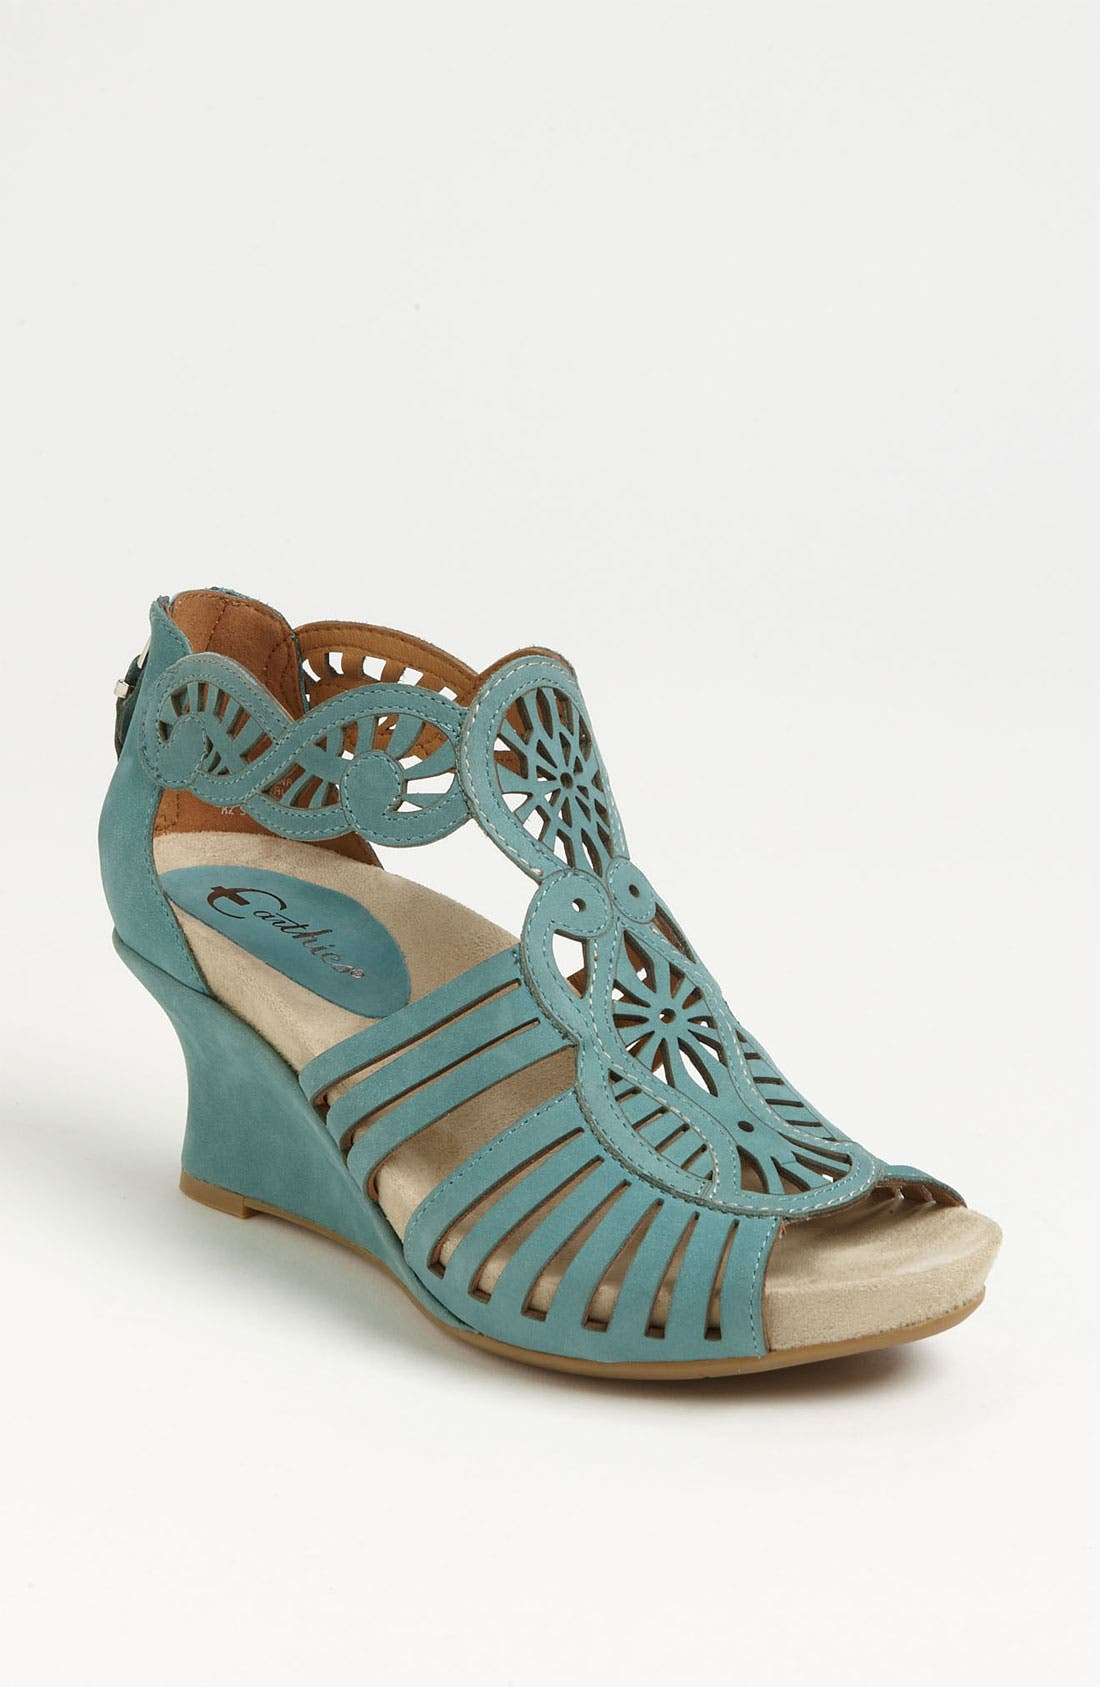 Alternate Image 1 Selected - Earthies® 'Caradonna' Sandal